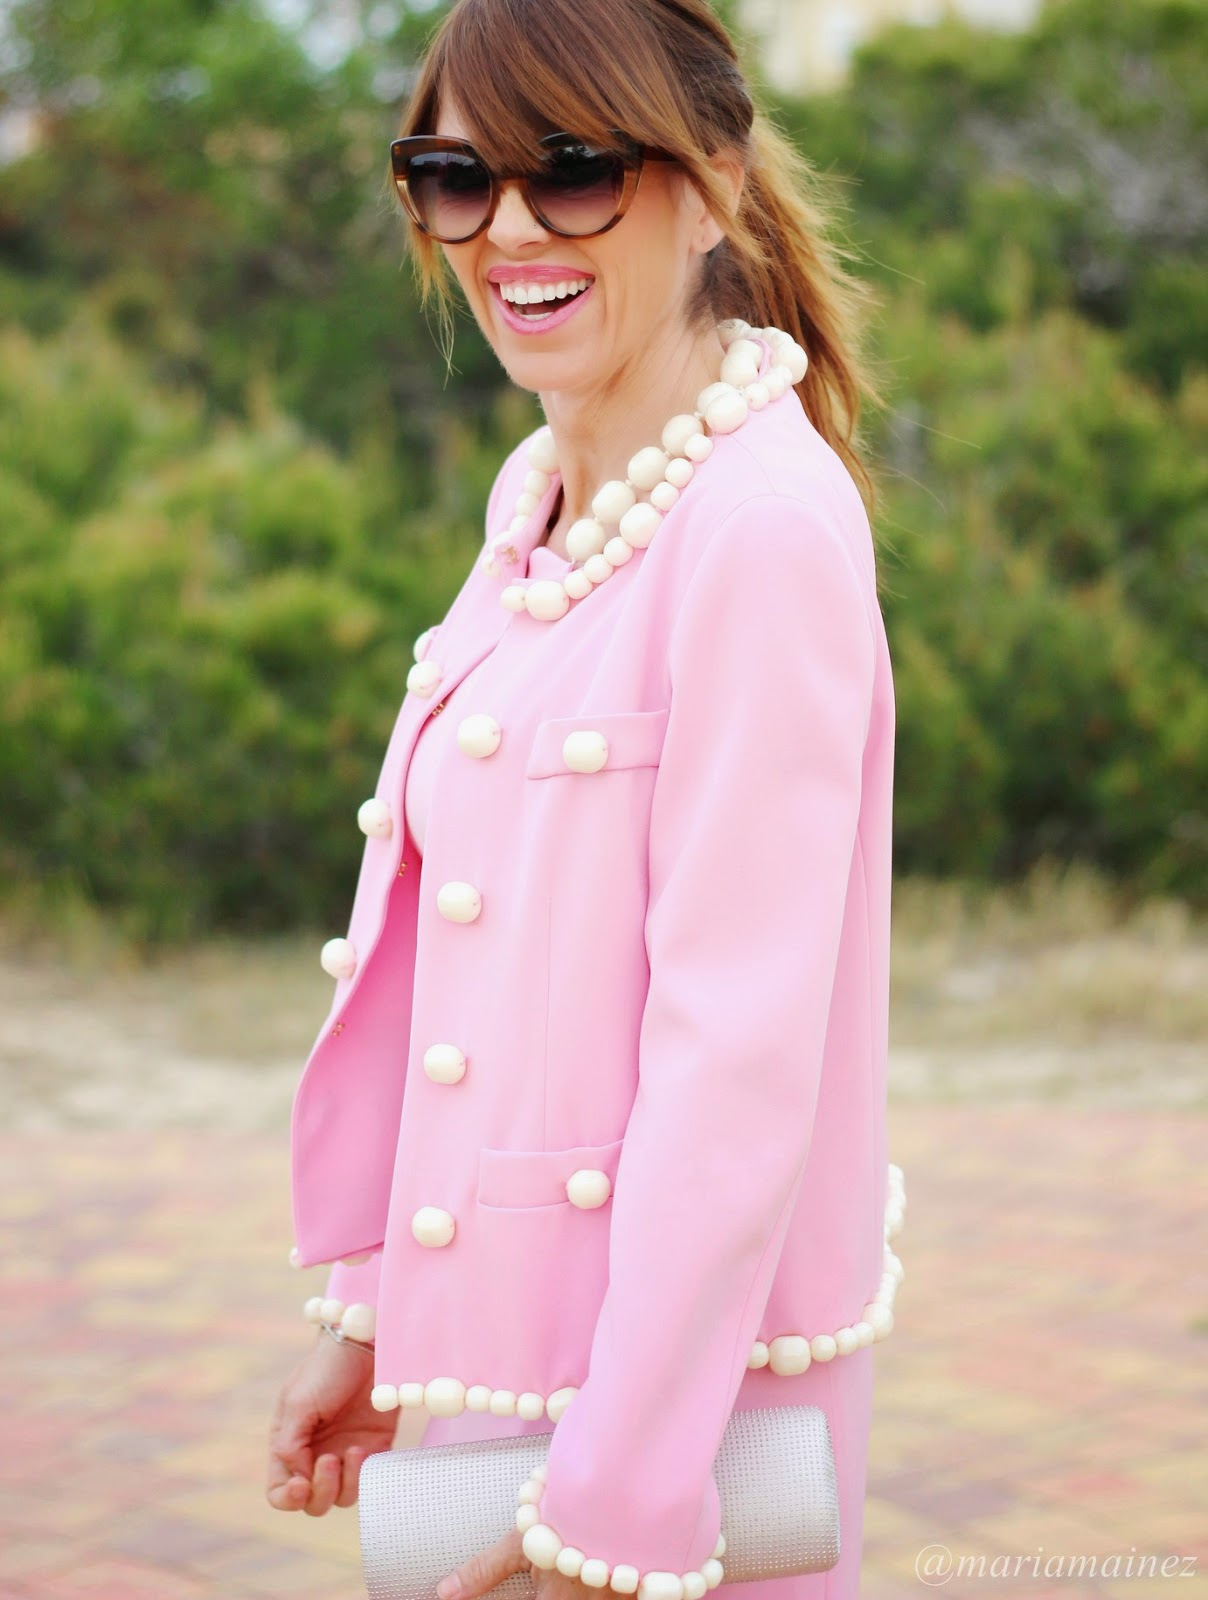 Moschino - Total look Moschino 2015 - Look Comuniones - Marc Jacobs sunnies - Fashion Blogger